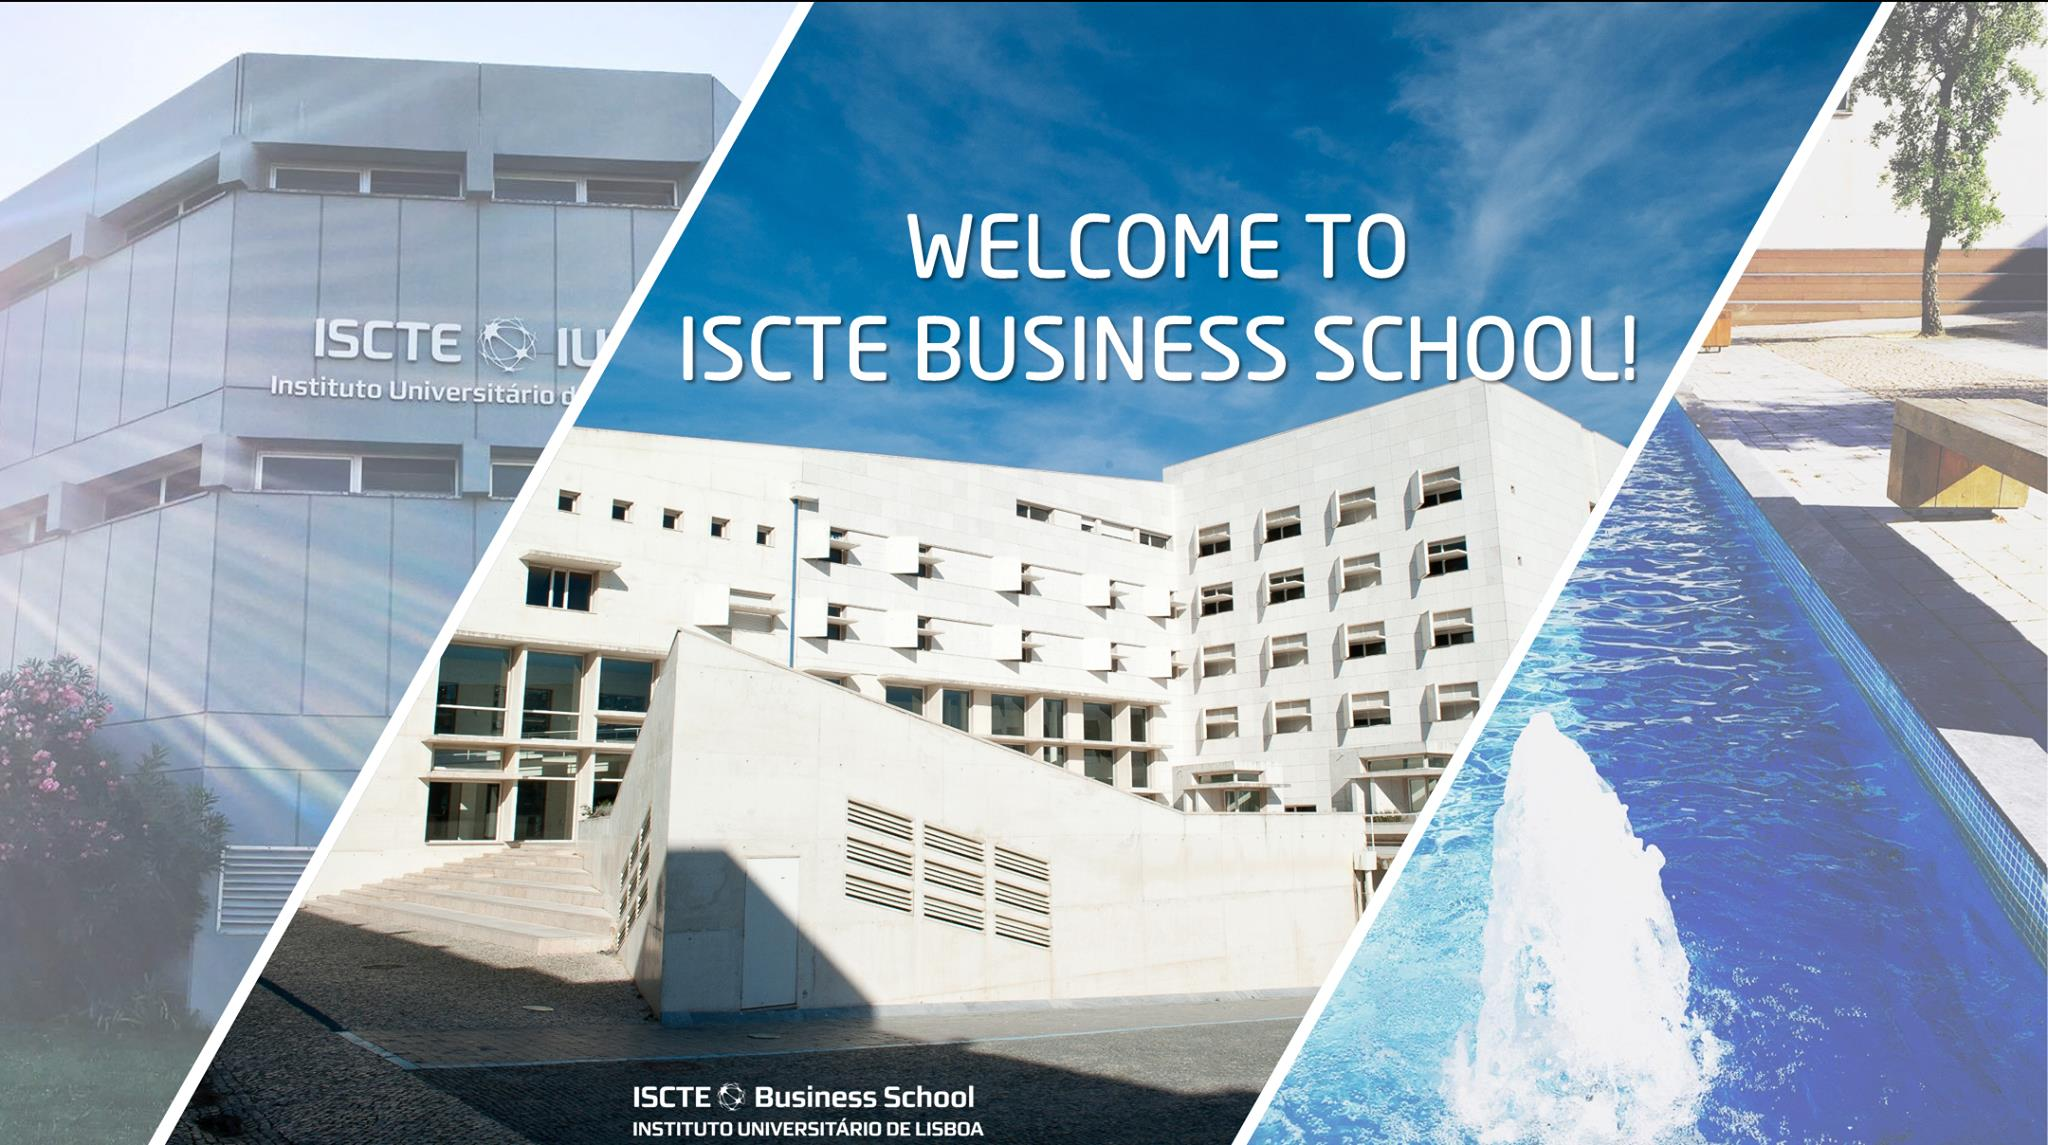 Logo ISCTE Business School - Instituto Universitário de Lisboa